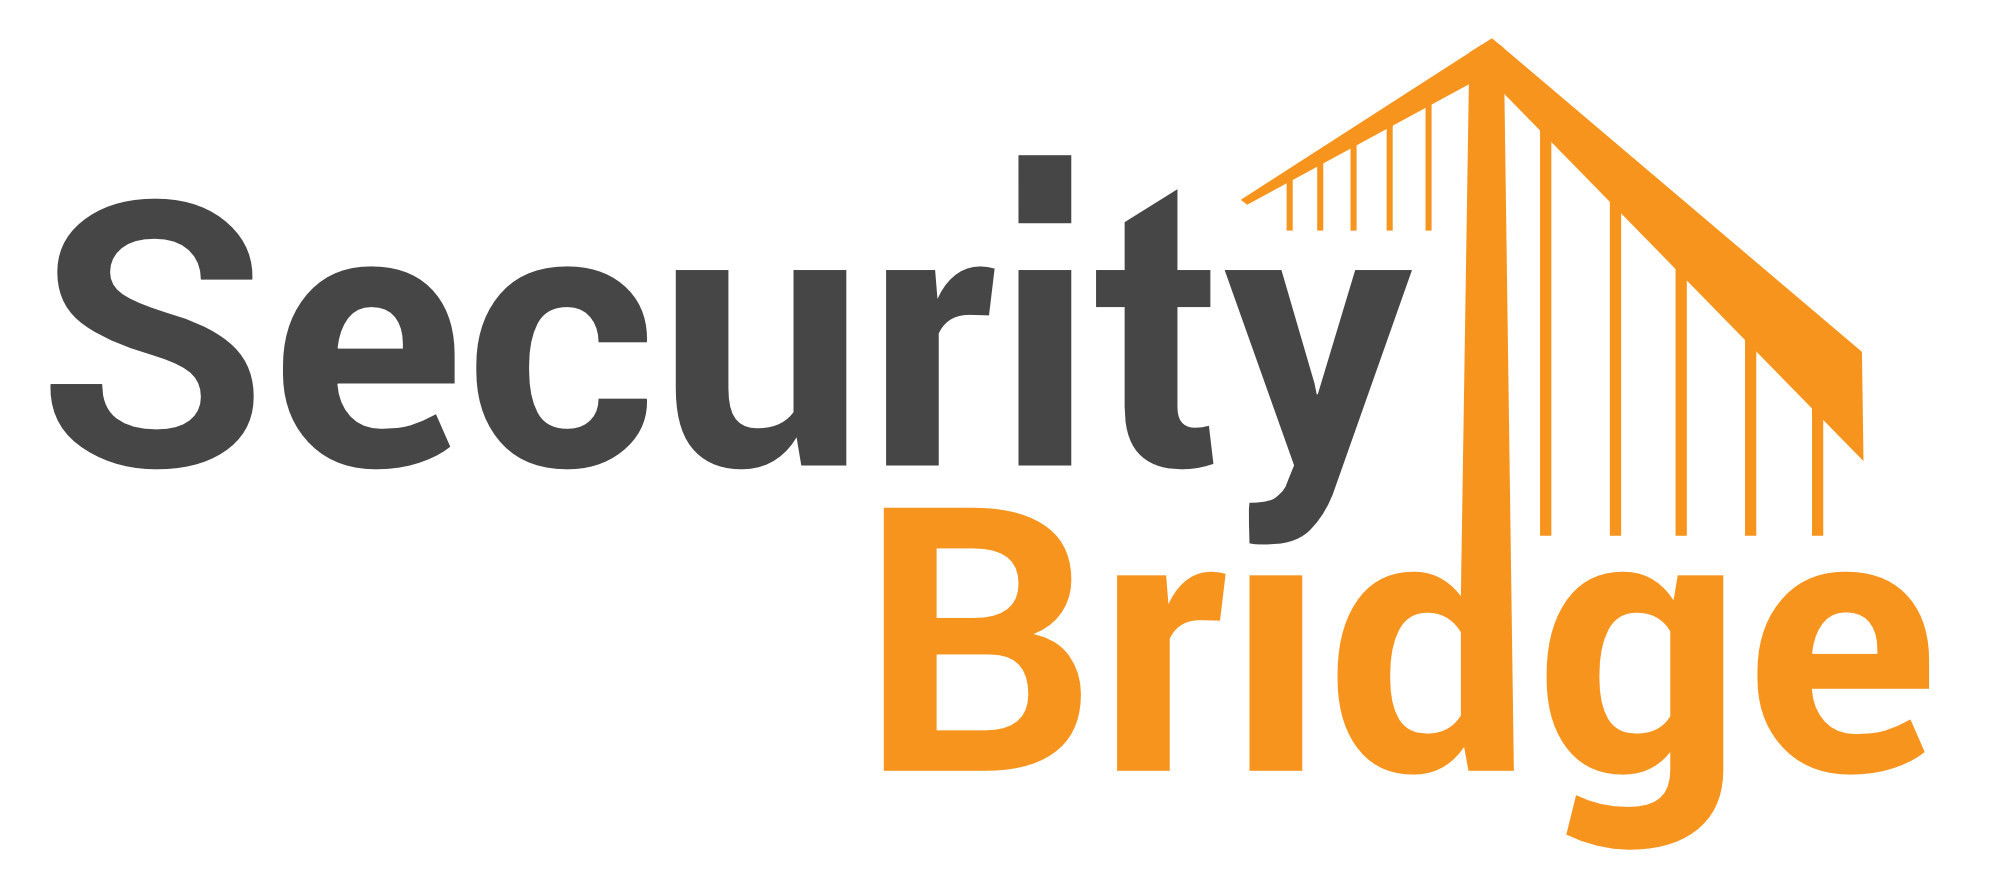 SecurityBridge